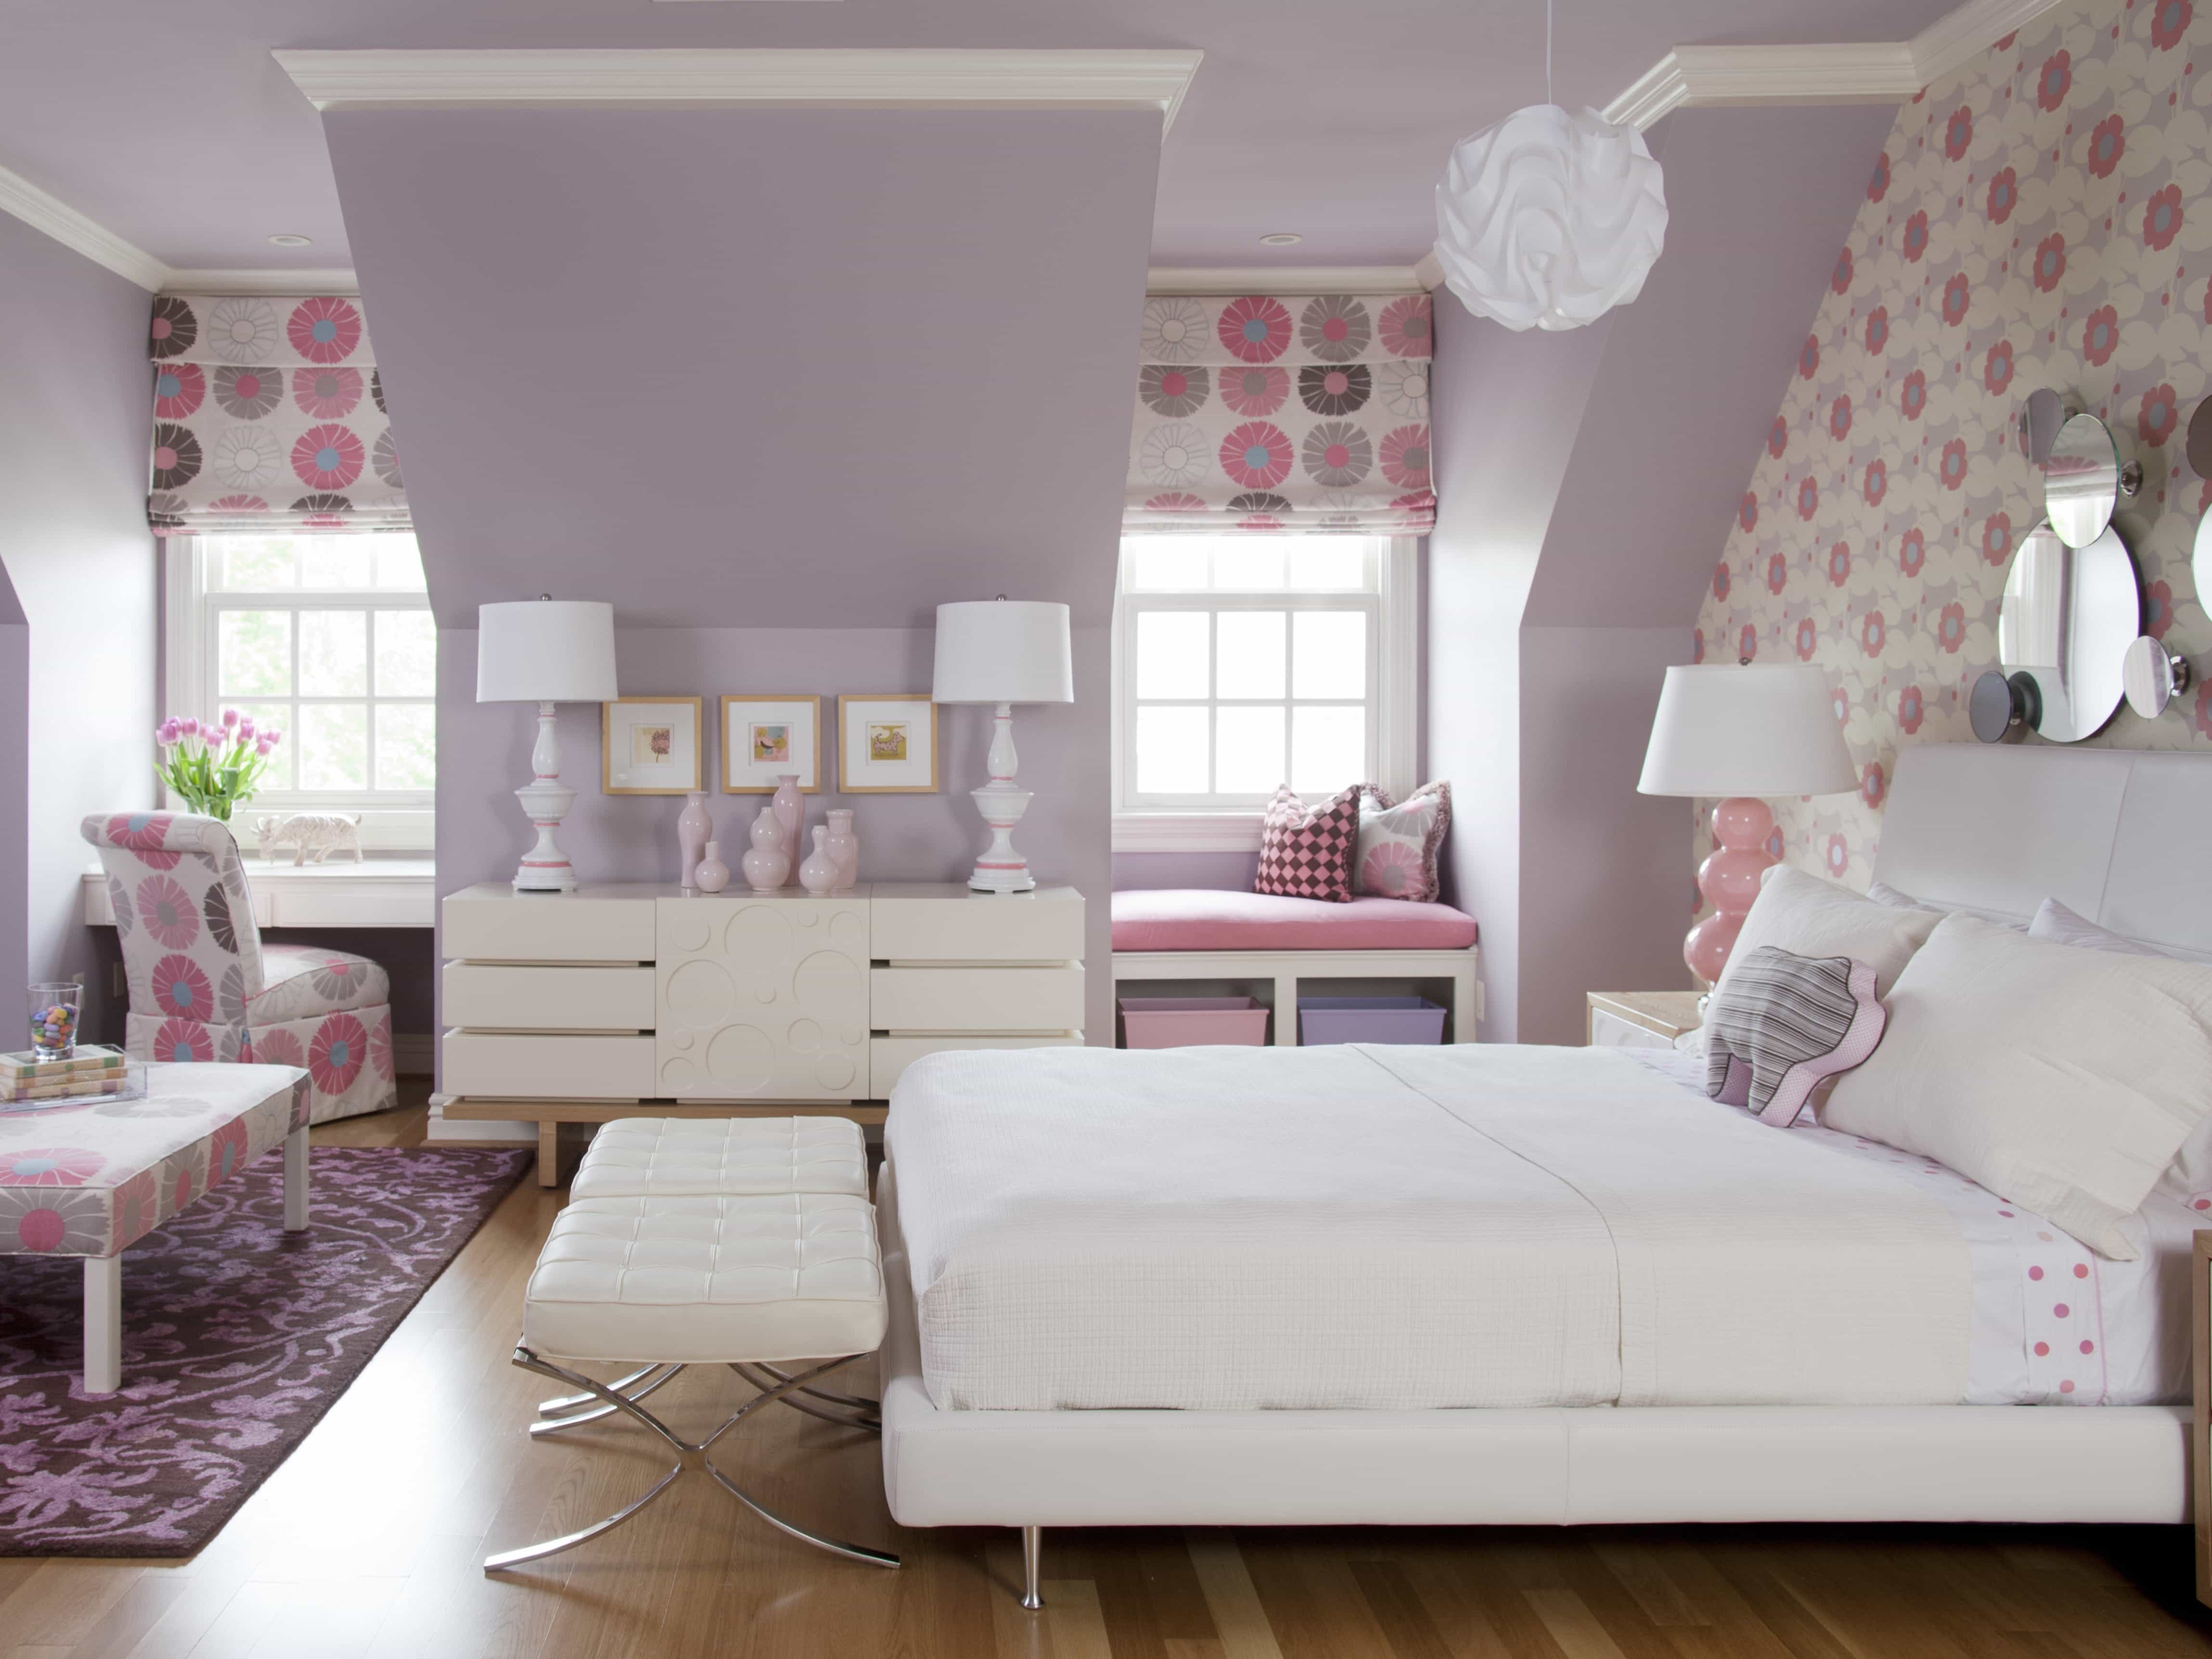 Transitional Lavender And White Girls Bedroom Decoration (Photo 1 of 28)